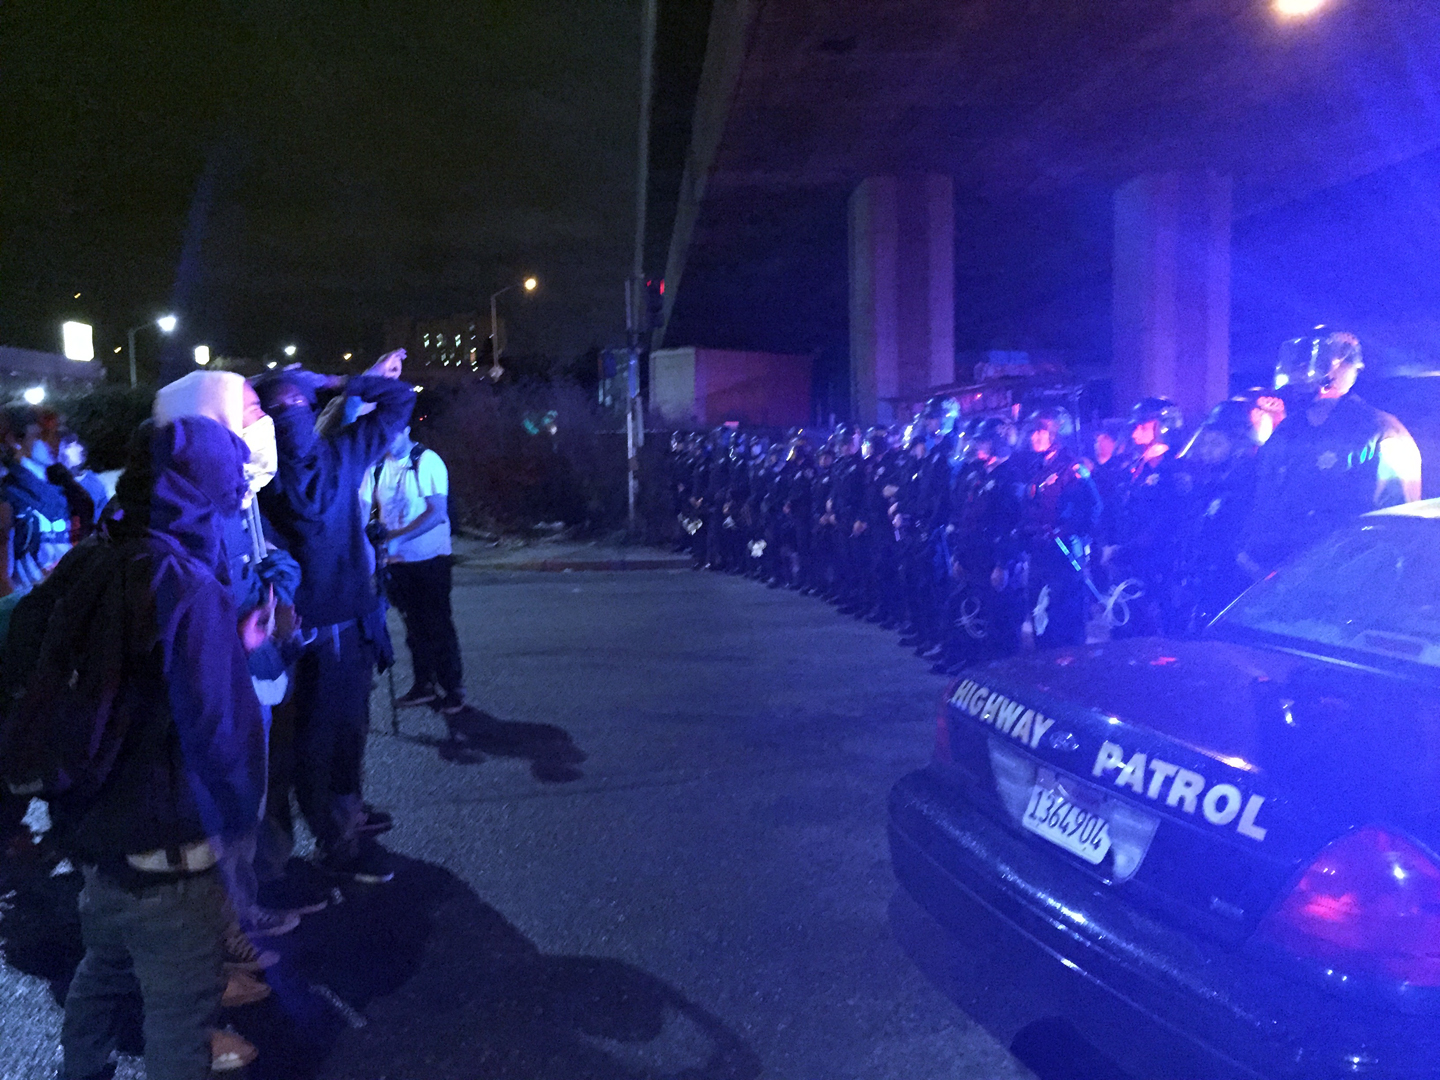 Protesters regroup in front of a police line under Interstate 880 in Oakland.